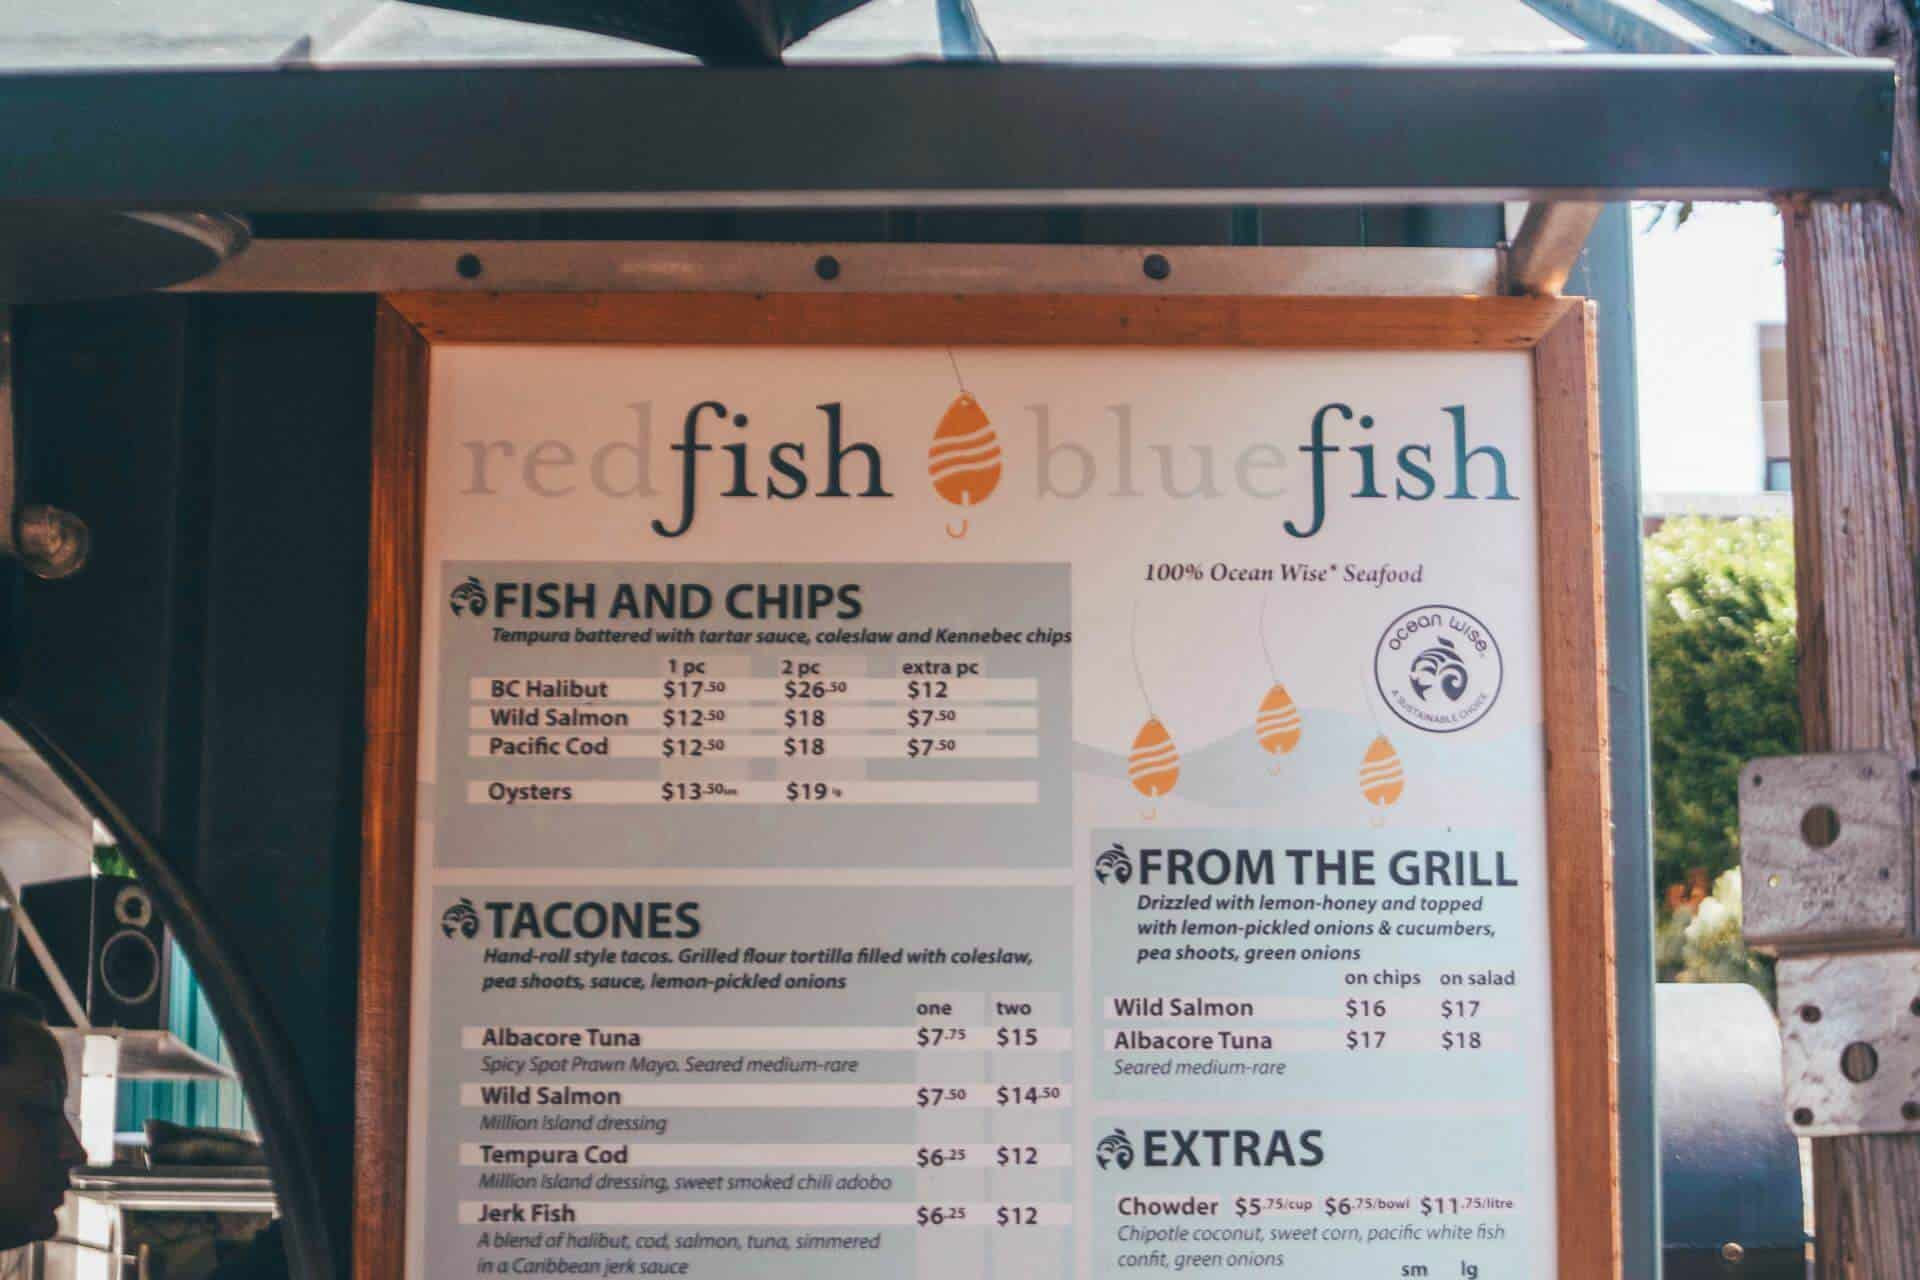 red fish blue fish menu